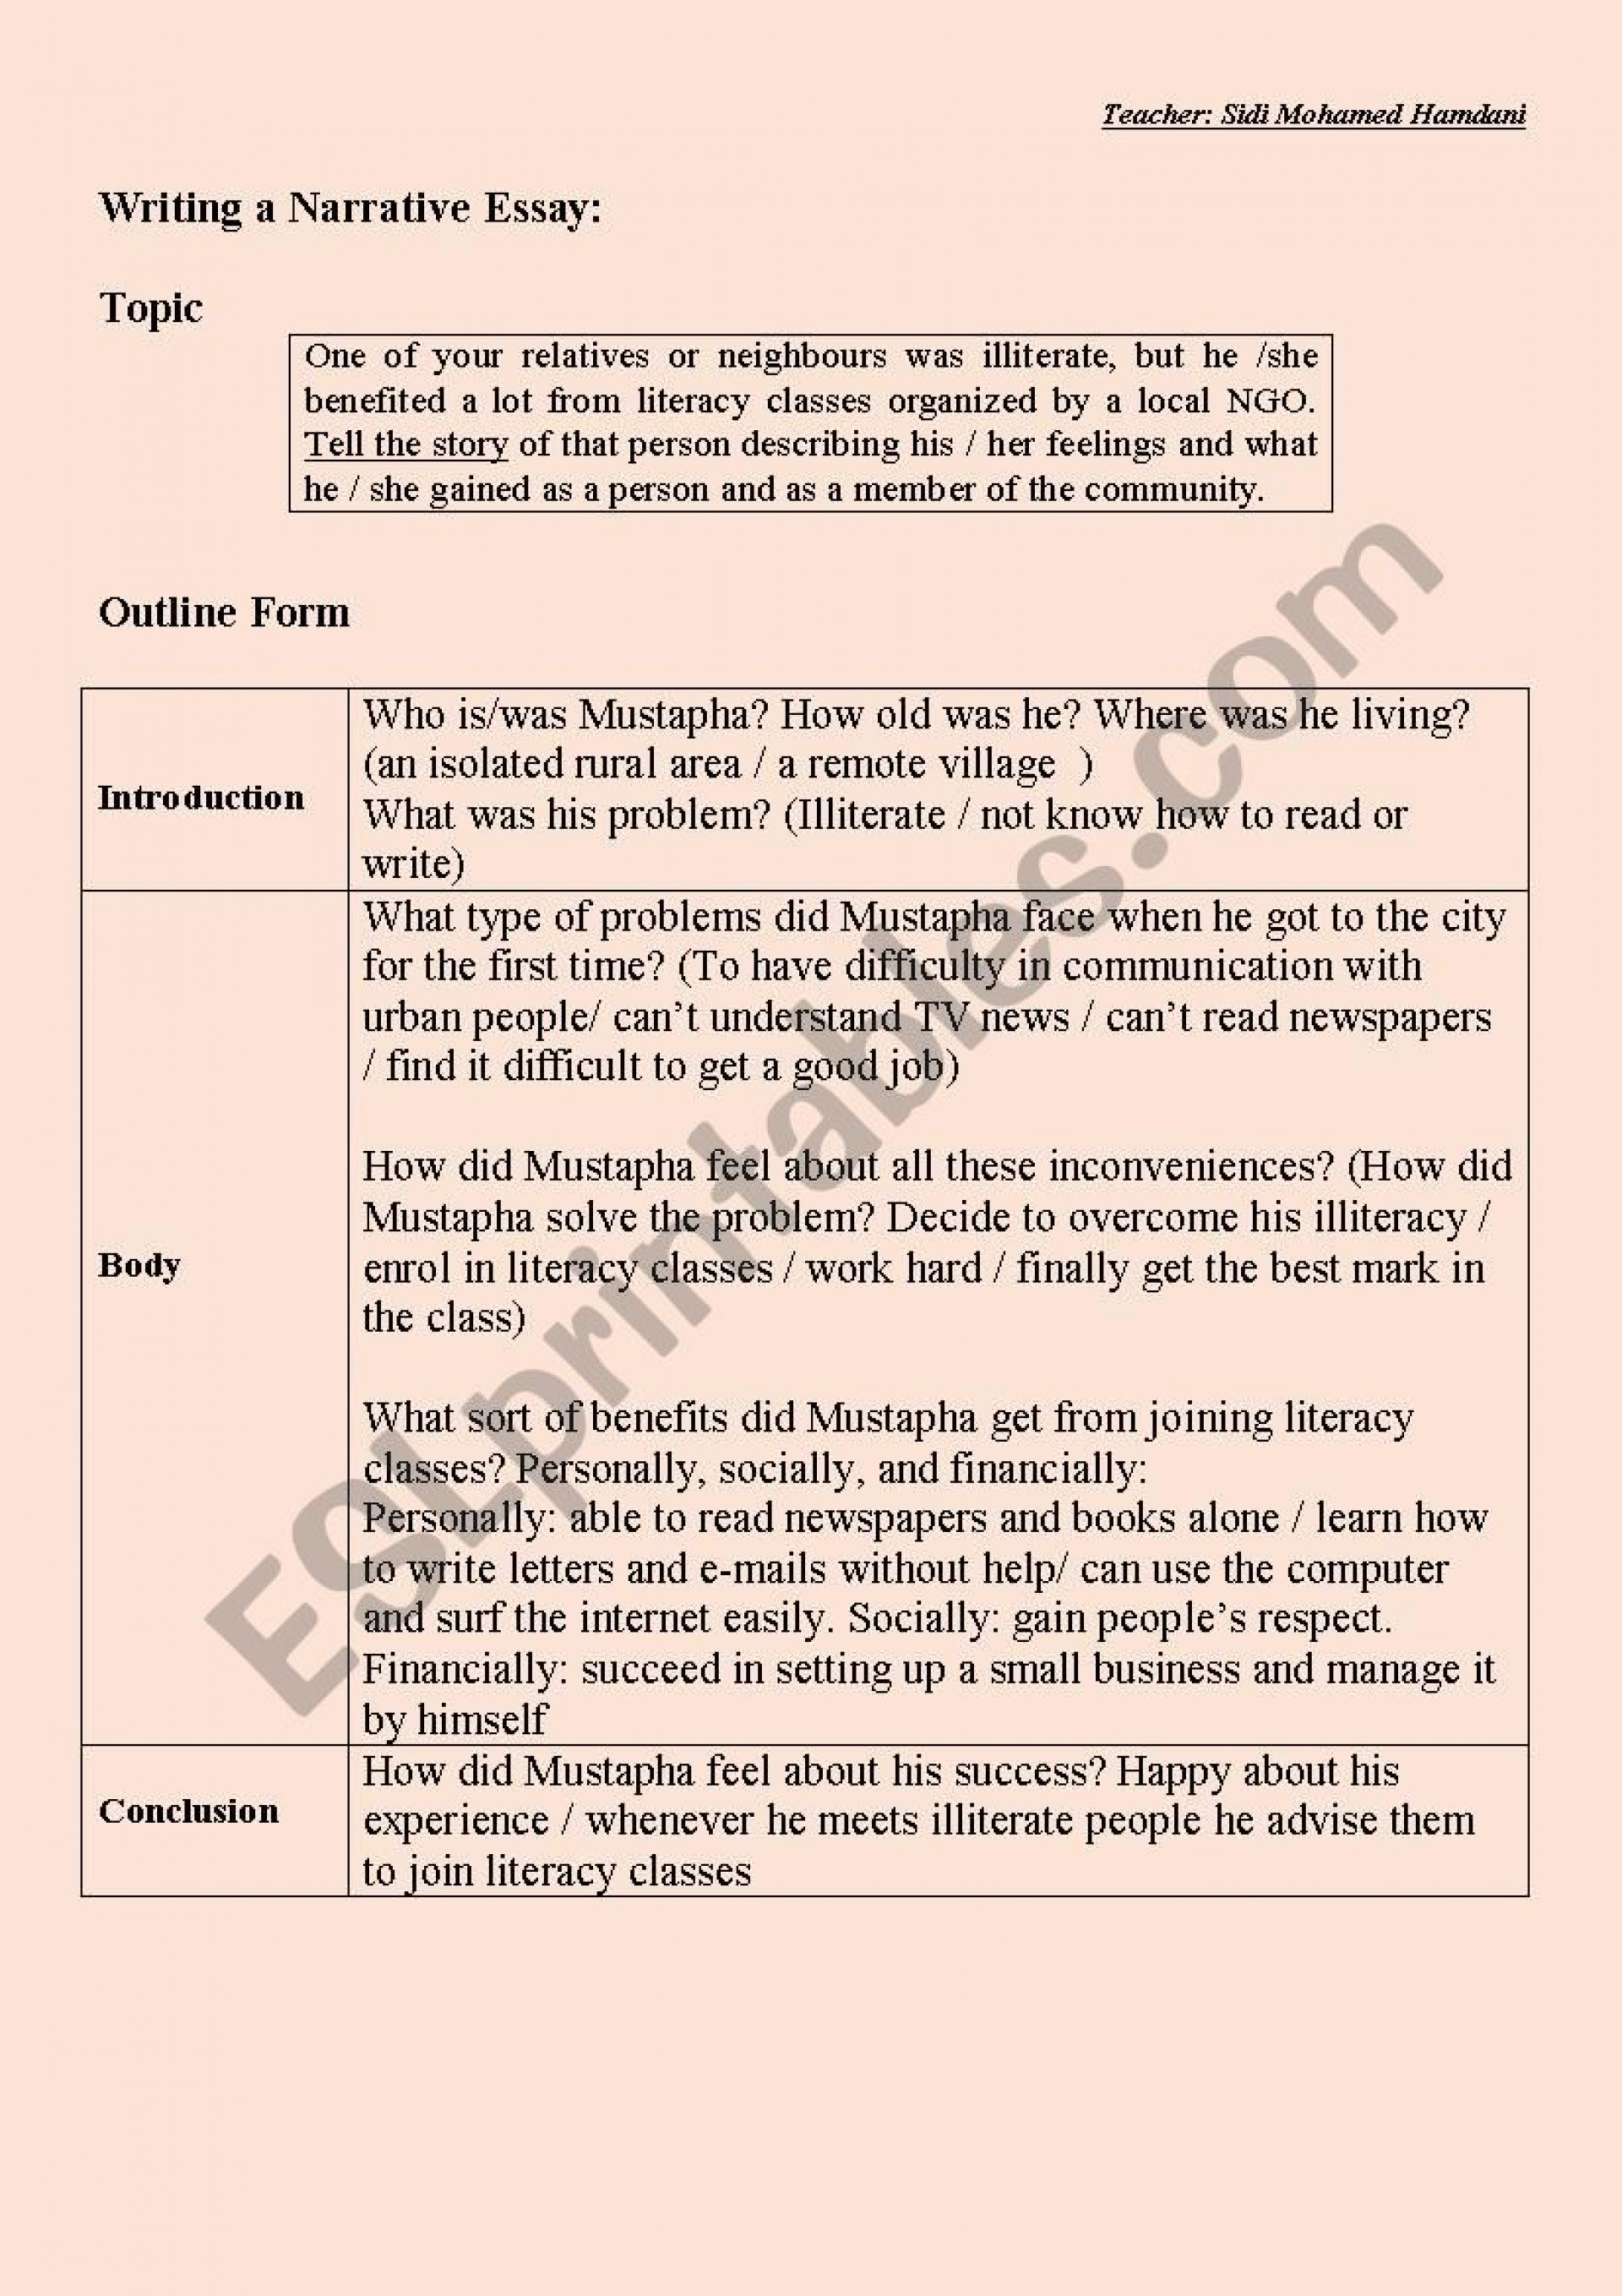 003 Essay Example 808001 1 Writing A Outline Form Sample Short Fantastic Narrative Pdf About Life Topics 1920